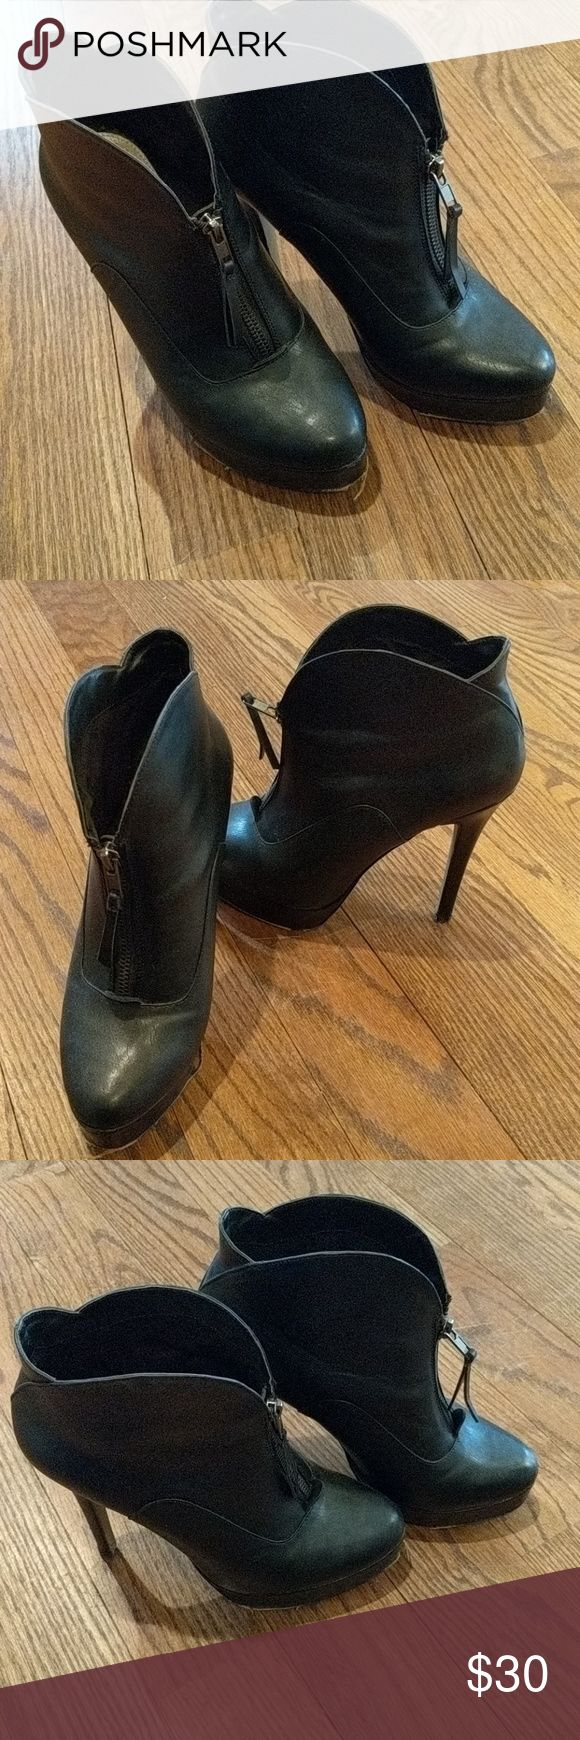 Charles by Charles David booties Used condition.  Heels are perfect, soles show wear.  Priced accordingly. Charles David Shoes Heeled Boots